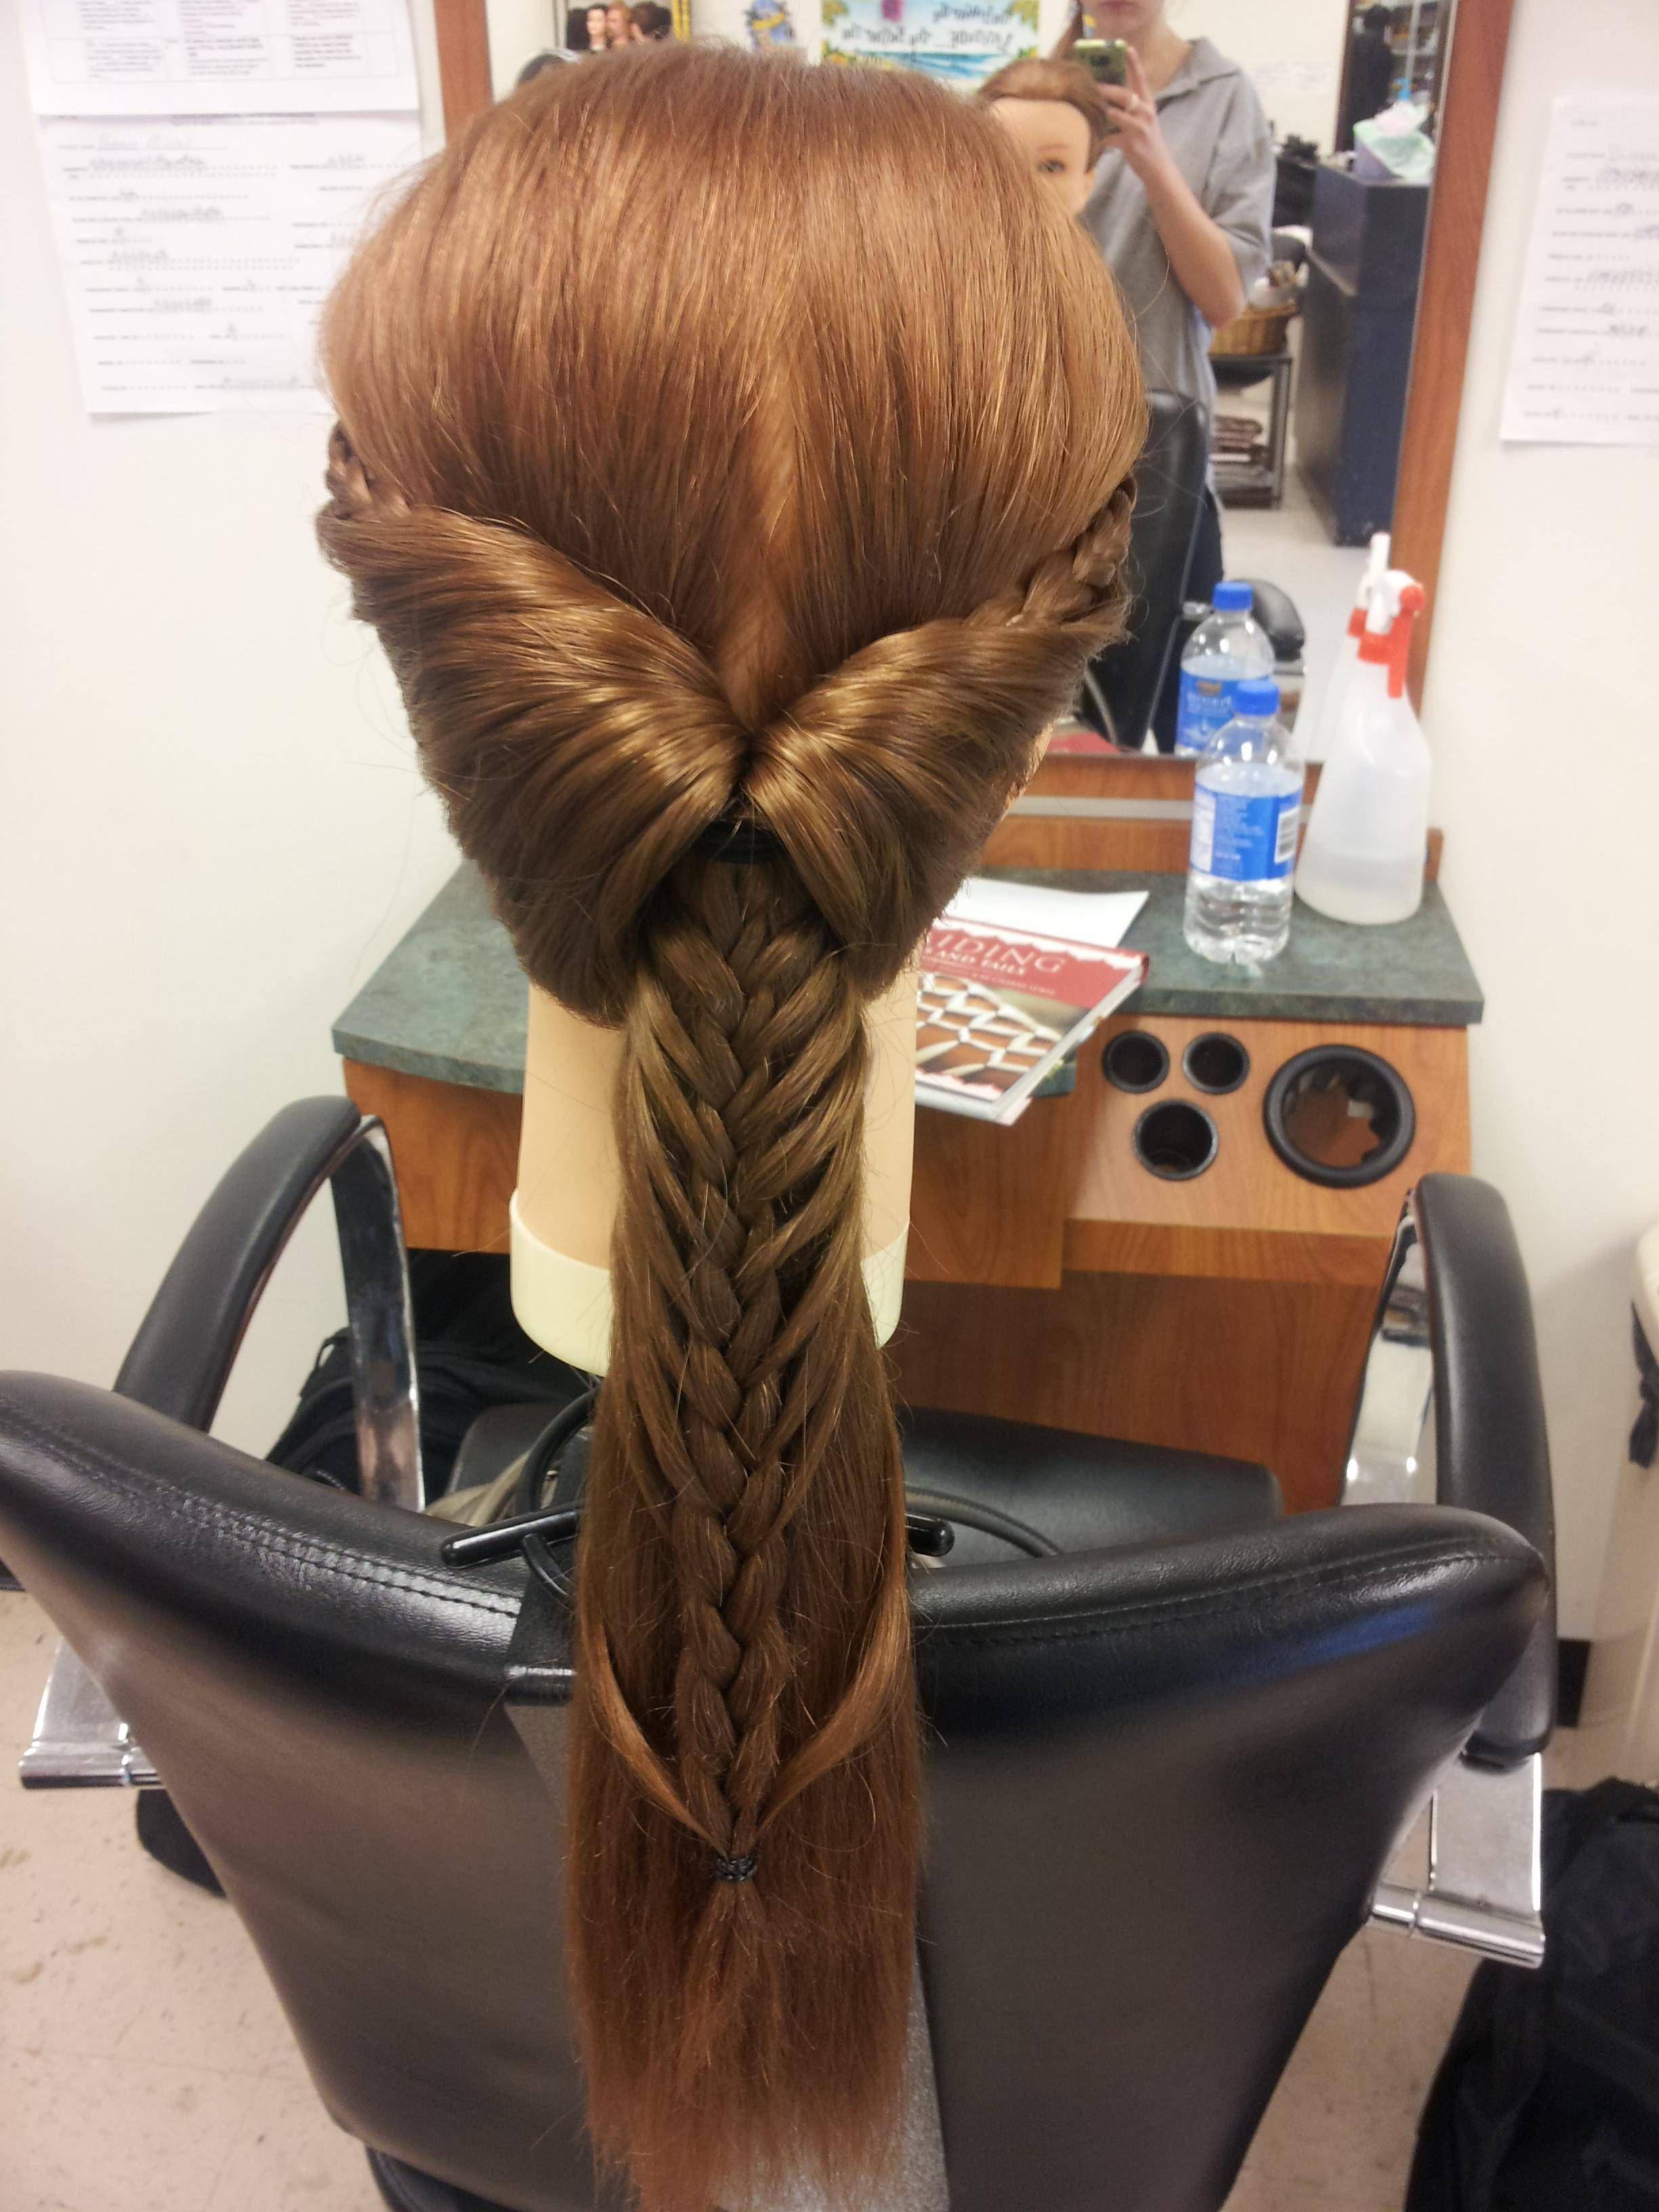 unfortunately there is no how-to with this picture, but it looks like they made a french-braid in a pony tail.